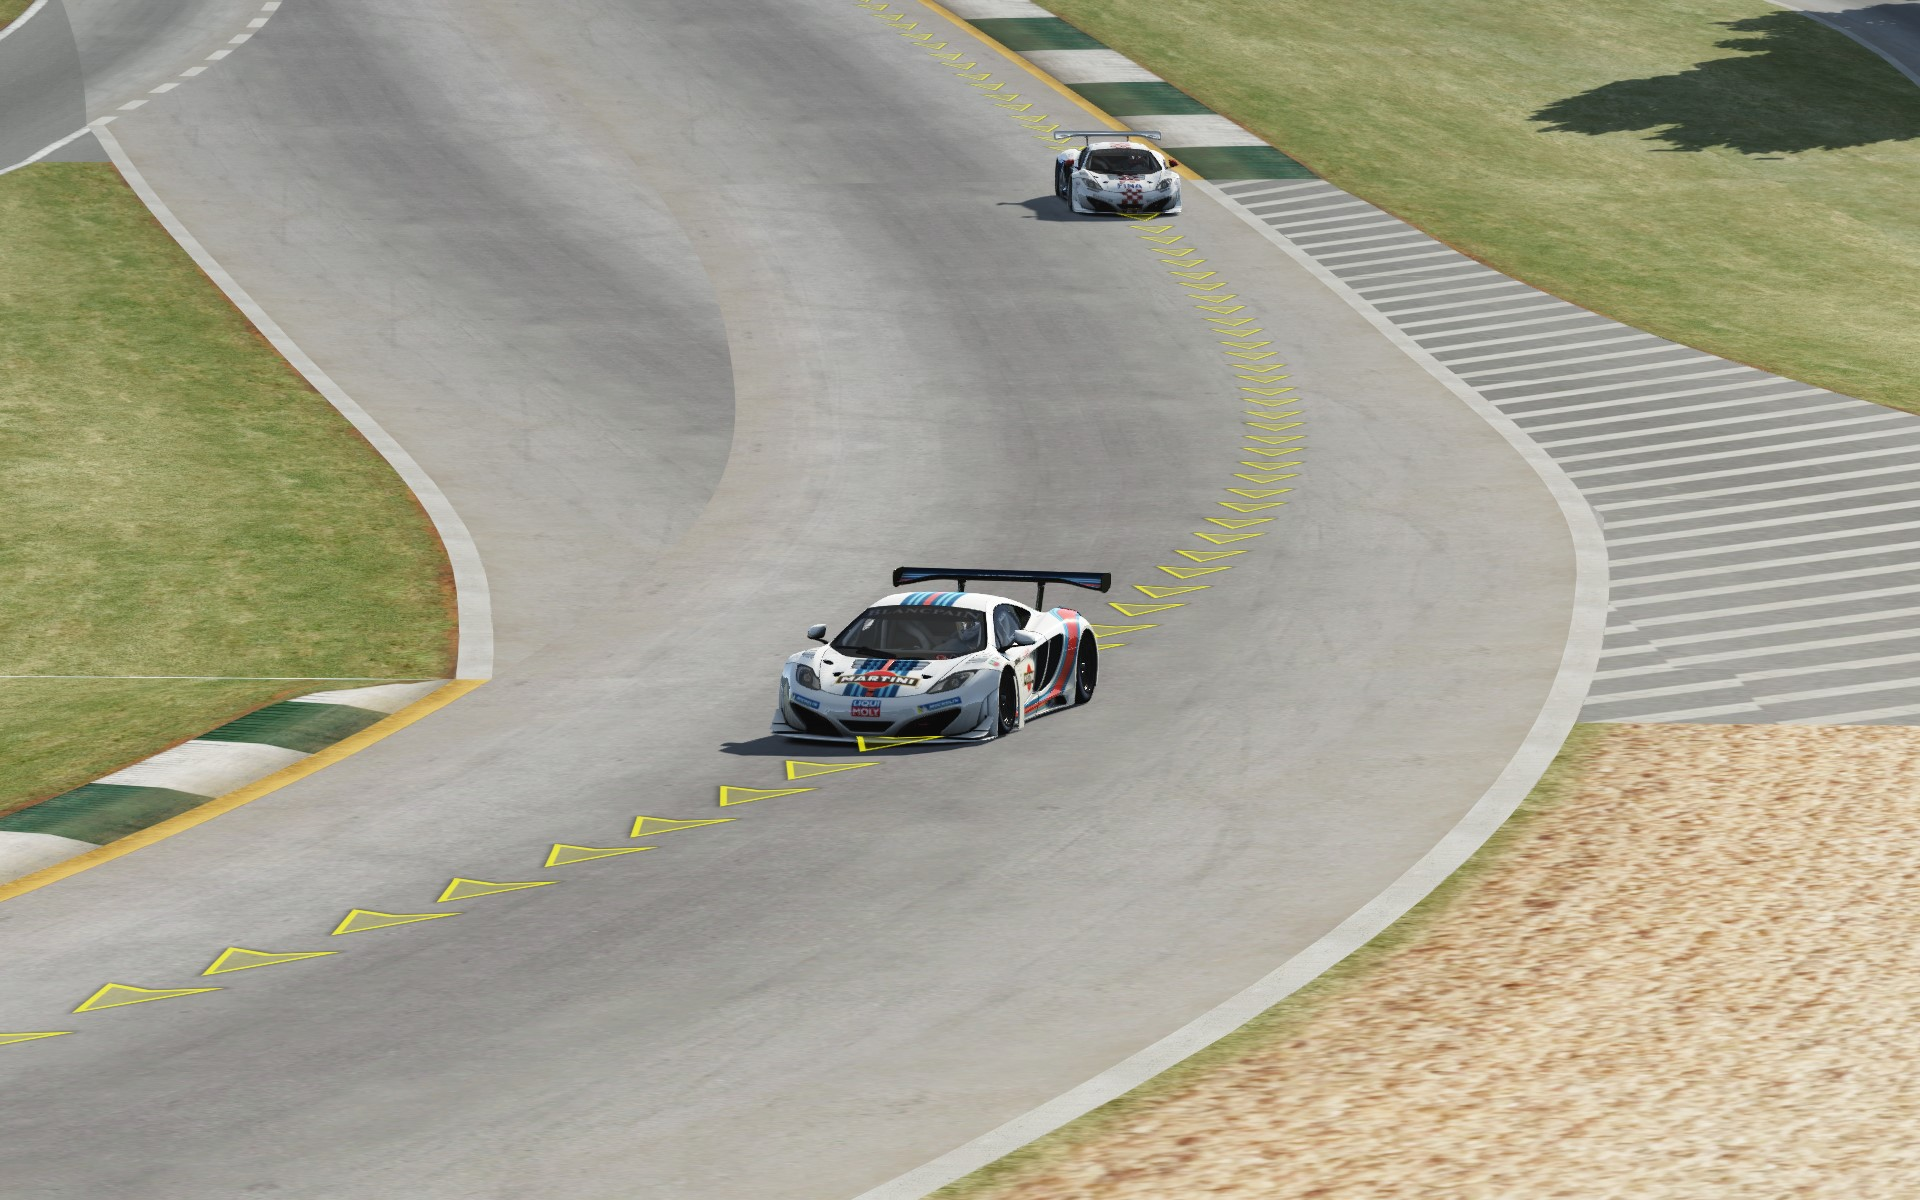 Screenshot_mclaren_mp412c_gt3_road atlanta_10-8-115-14-2-47.jpg